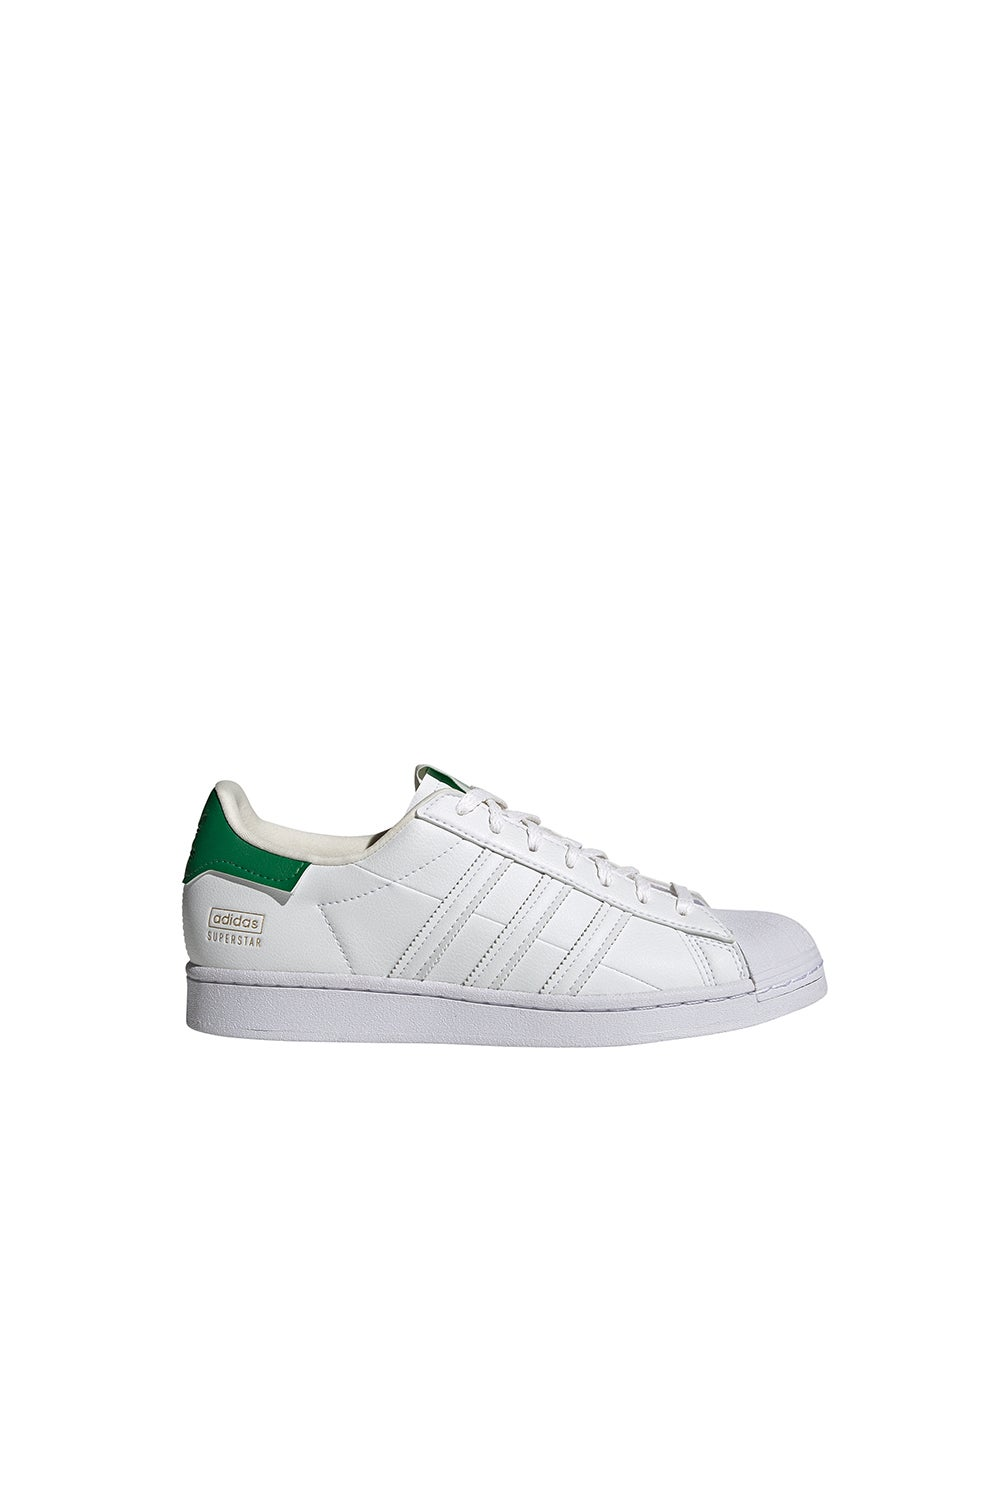 adidas Superstar FTWR White/Off White/Green